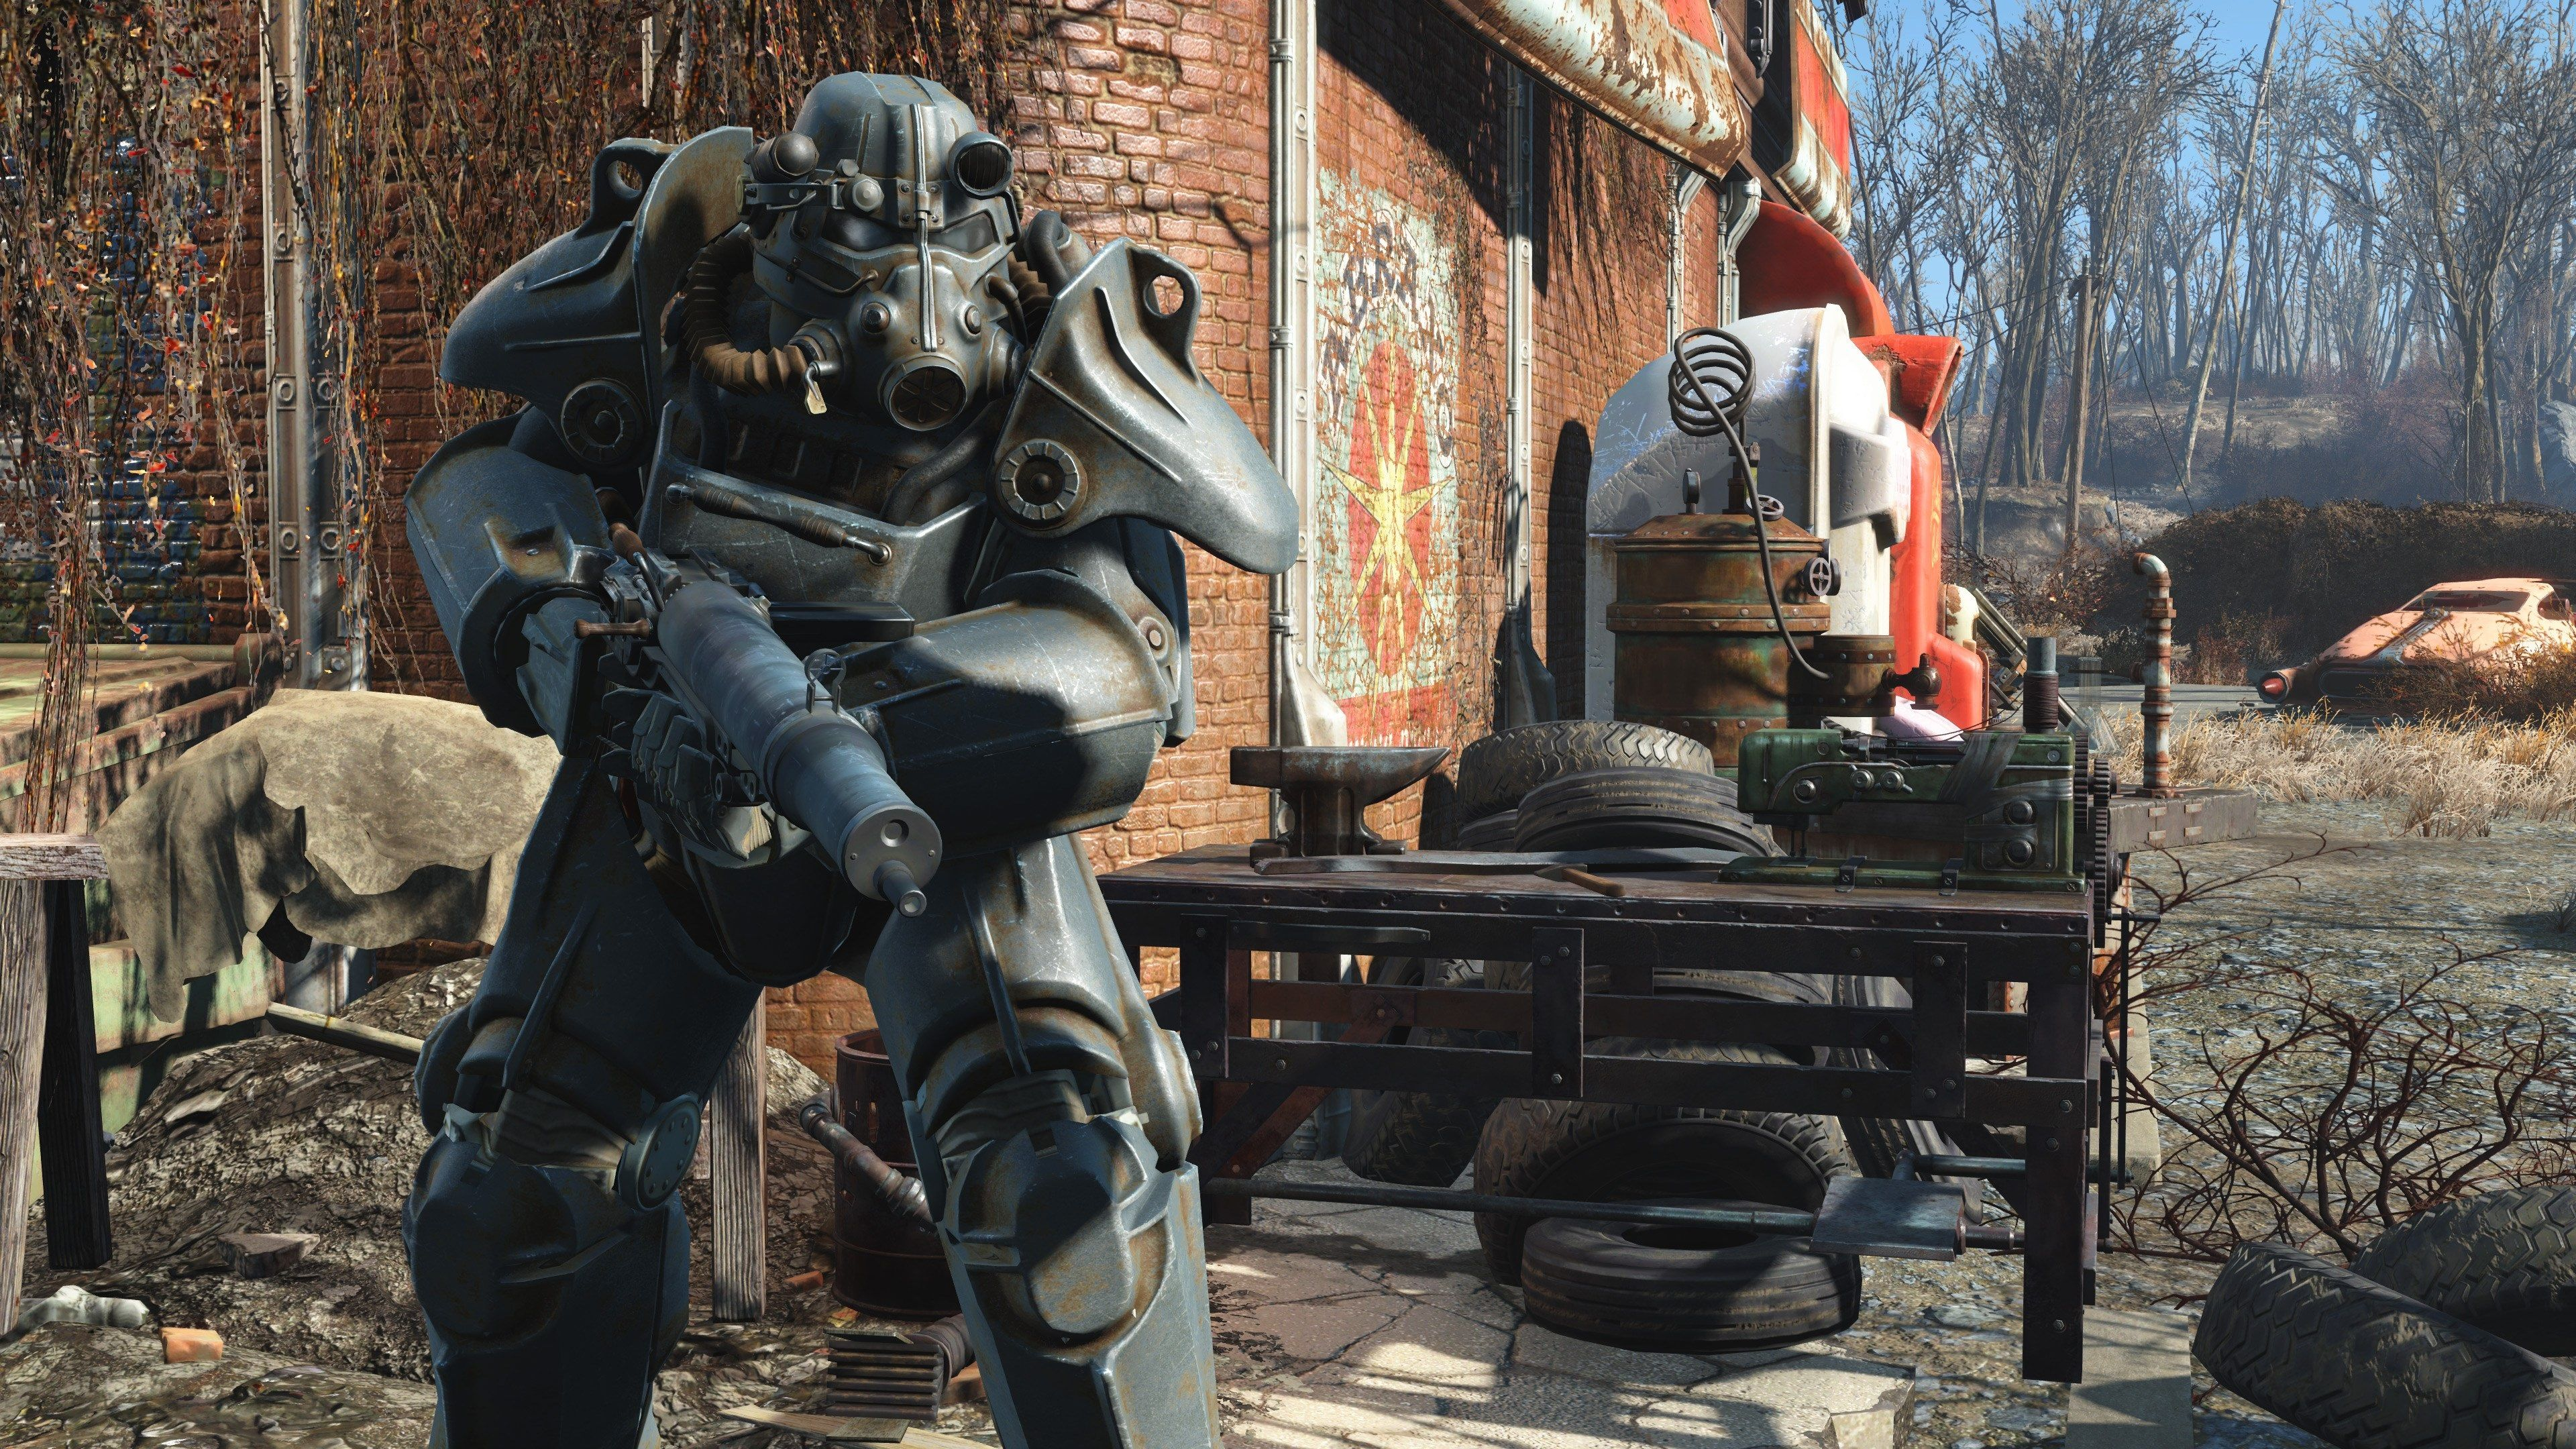 3840x2160 Fallout 4 4k Cool Desktop Wallpaper Fallout Monster Pc Ps4 Pro